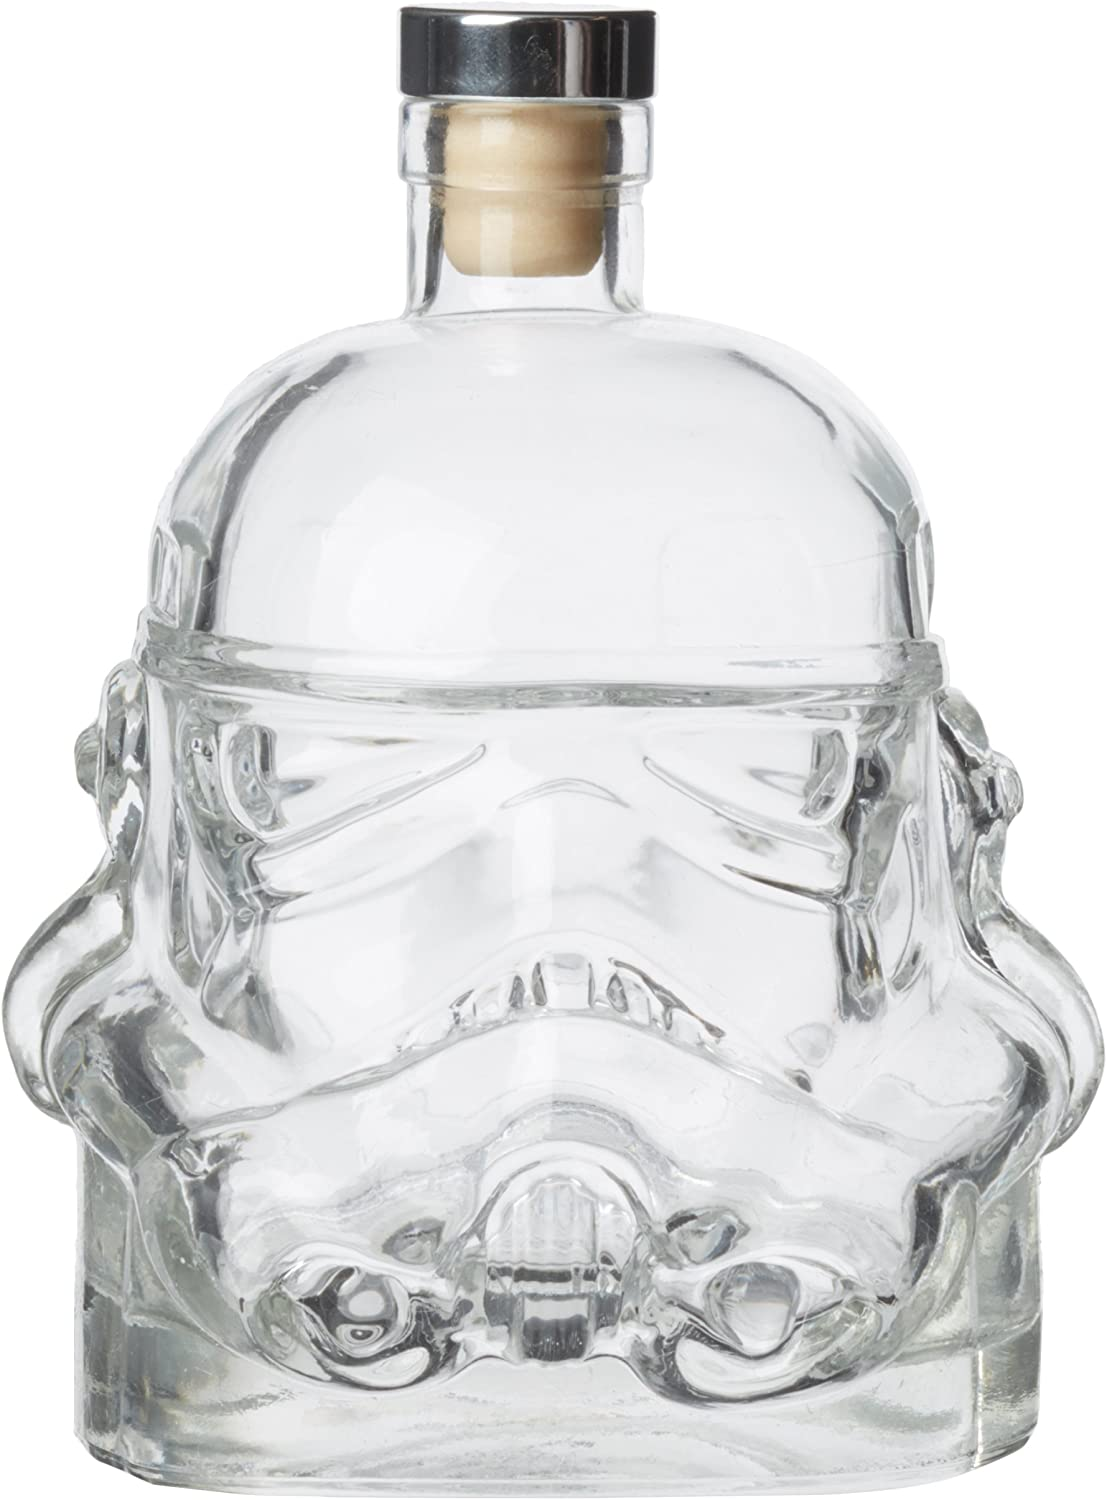 Thumbs Up Star Wars Stormtrooper Max 87% OFF Glass Popular products Decanter